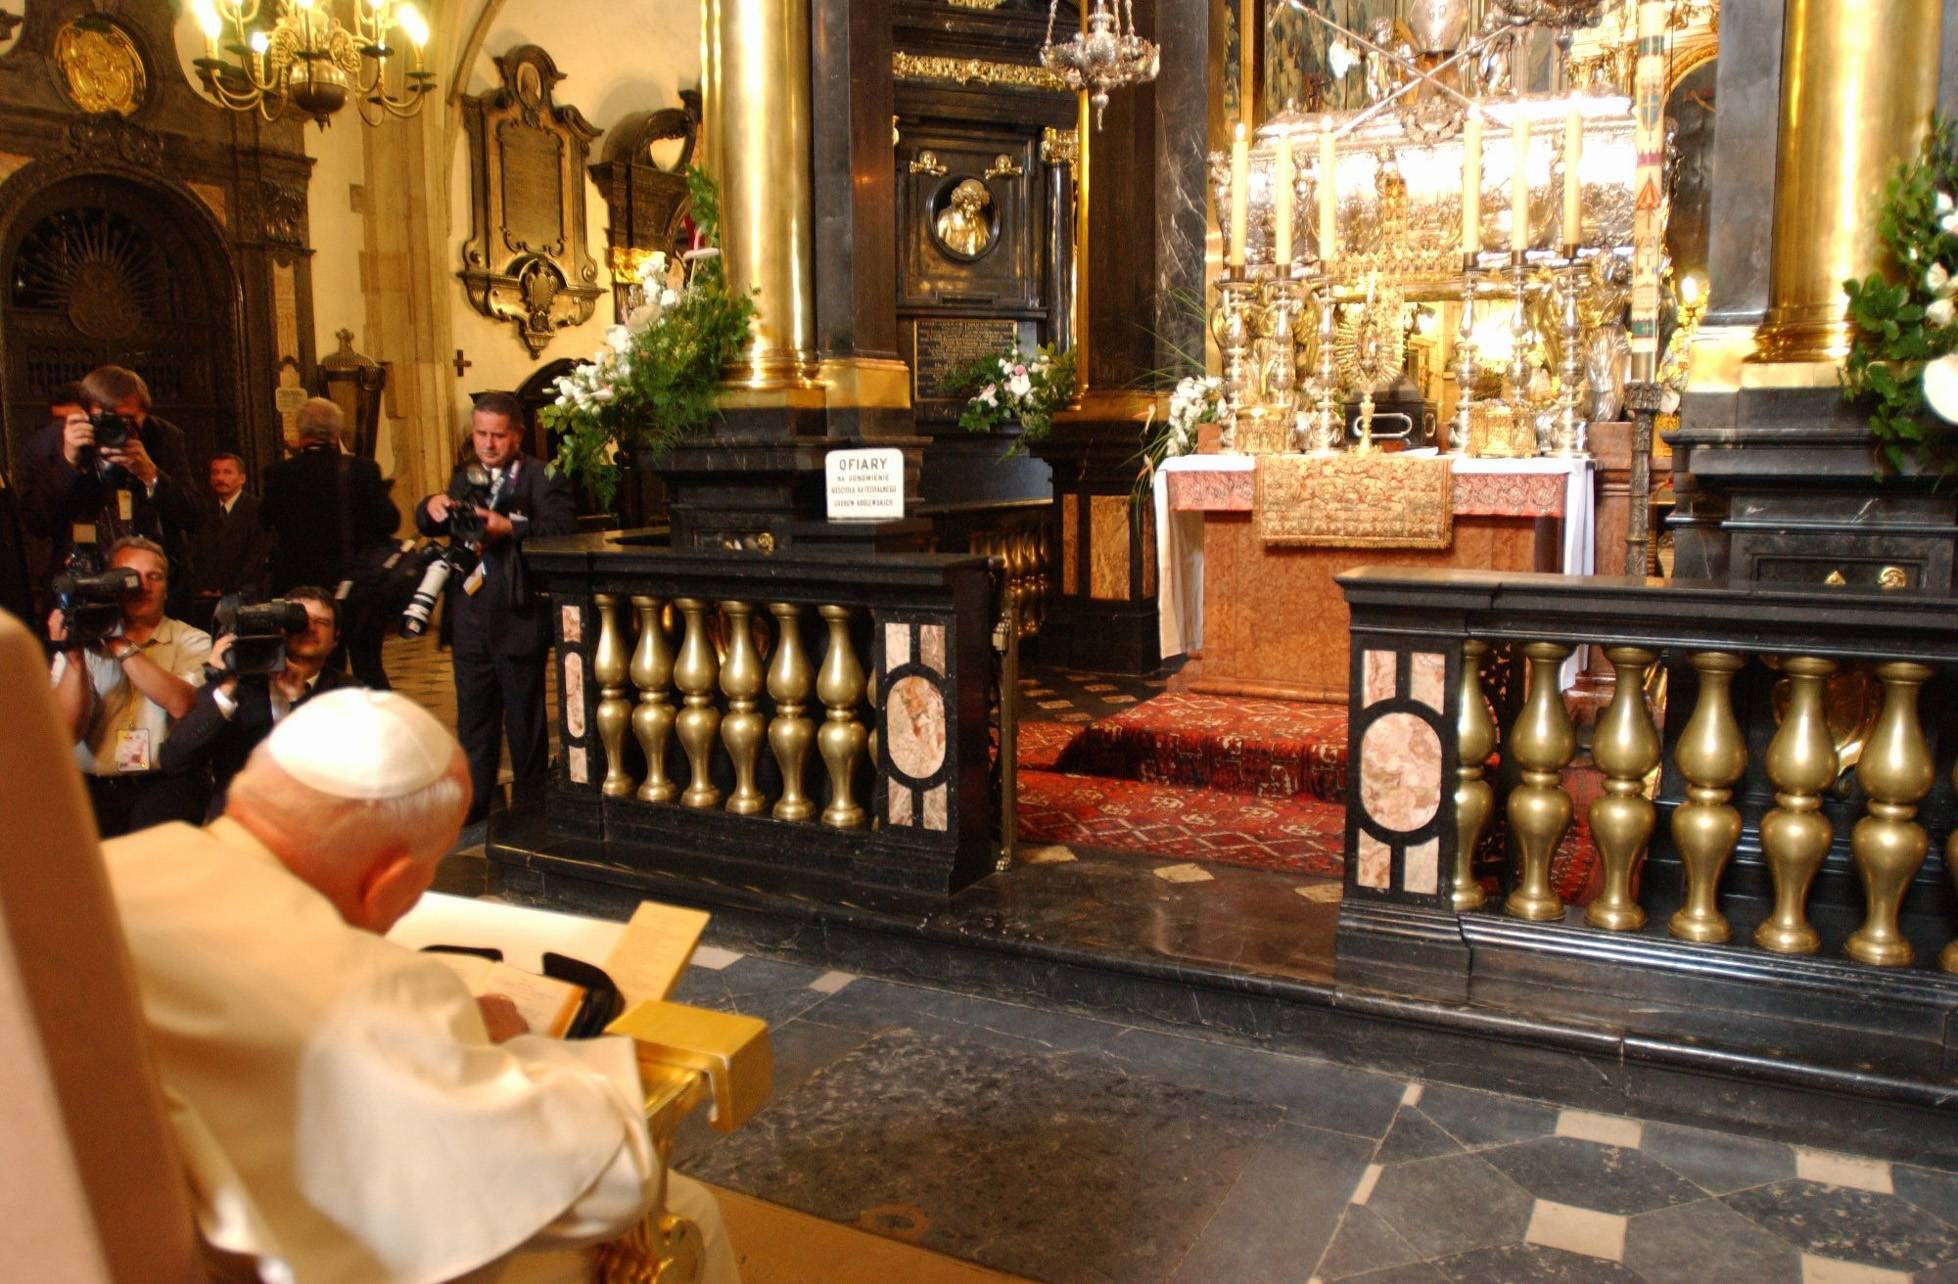 In 2002, Pope John Paul II prayed in front of the altar of the Wawel Cathedral in Krakow, Poland. On Nov. 2, 1946, the Rev. Karol Wojtyla, who became later Pope John Paul II, held his first Mass as a priest in the cathedral's crypt of St. Leonard. He was made bishop at the cathedral's main altar in July 1958.